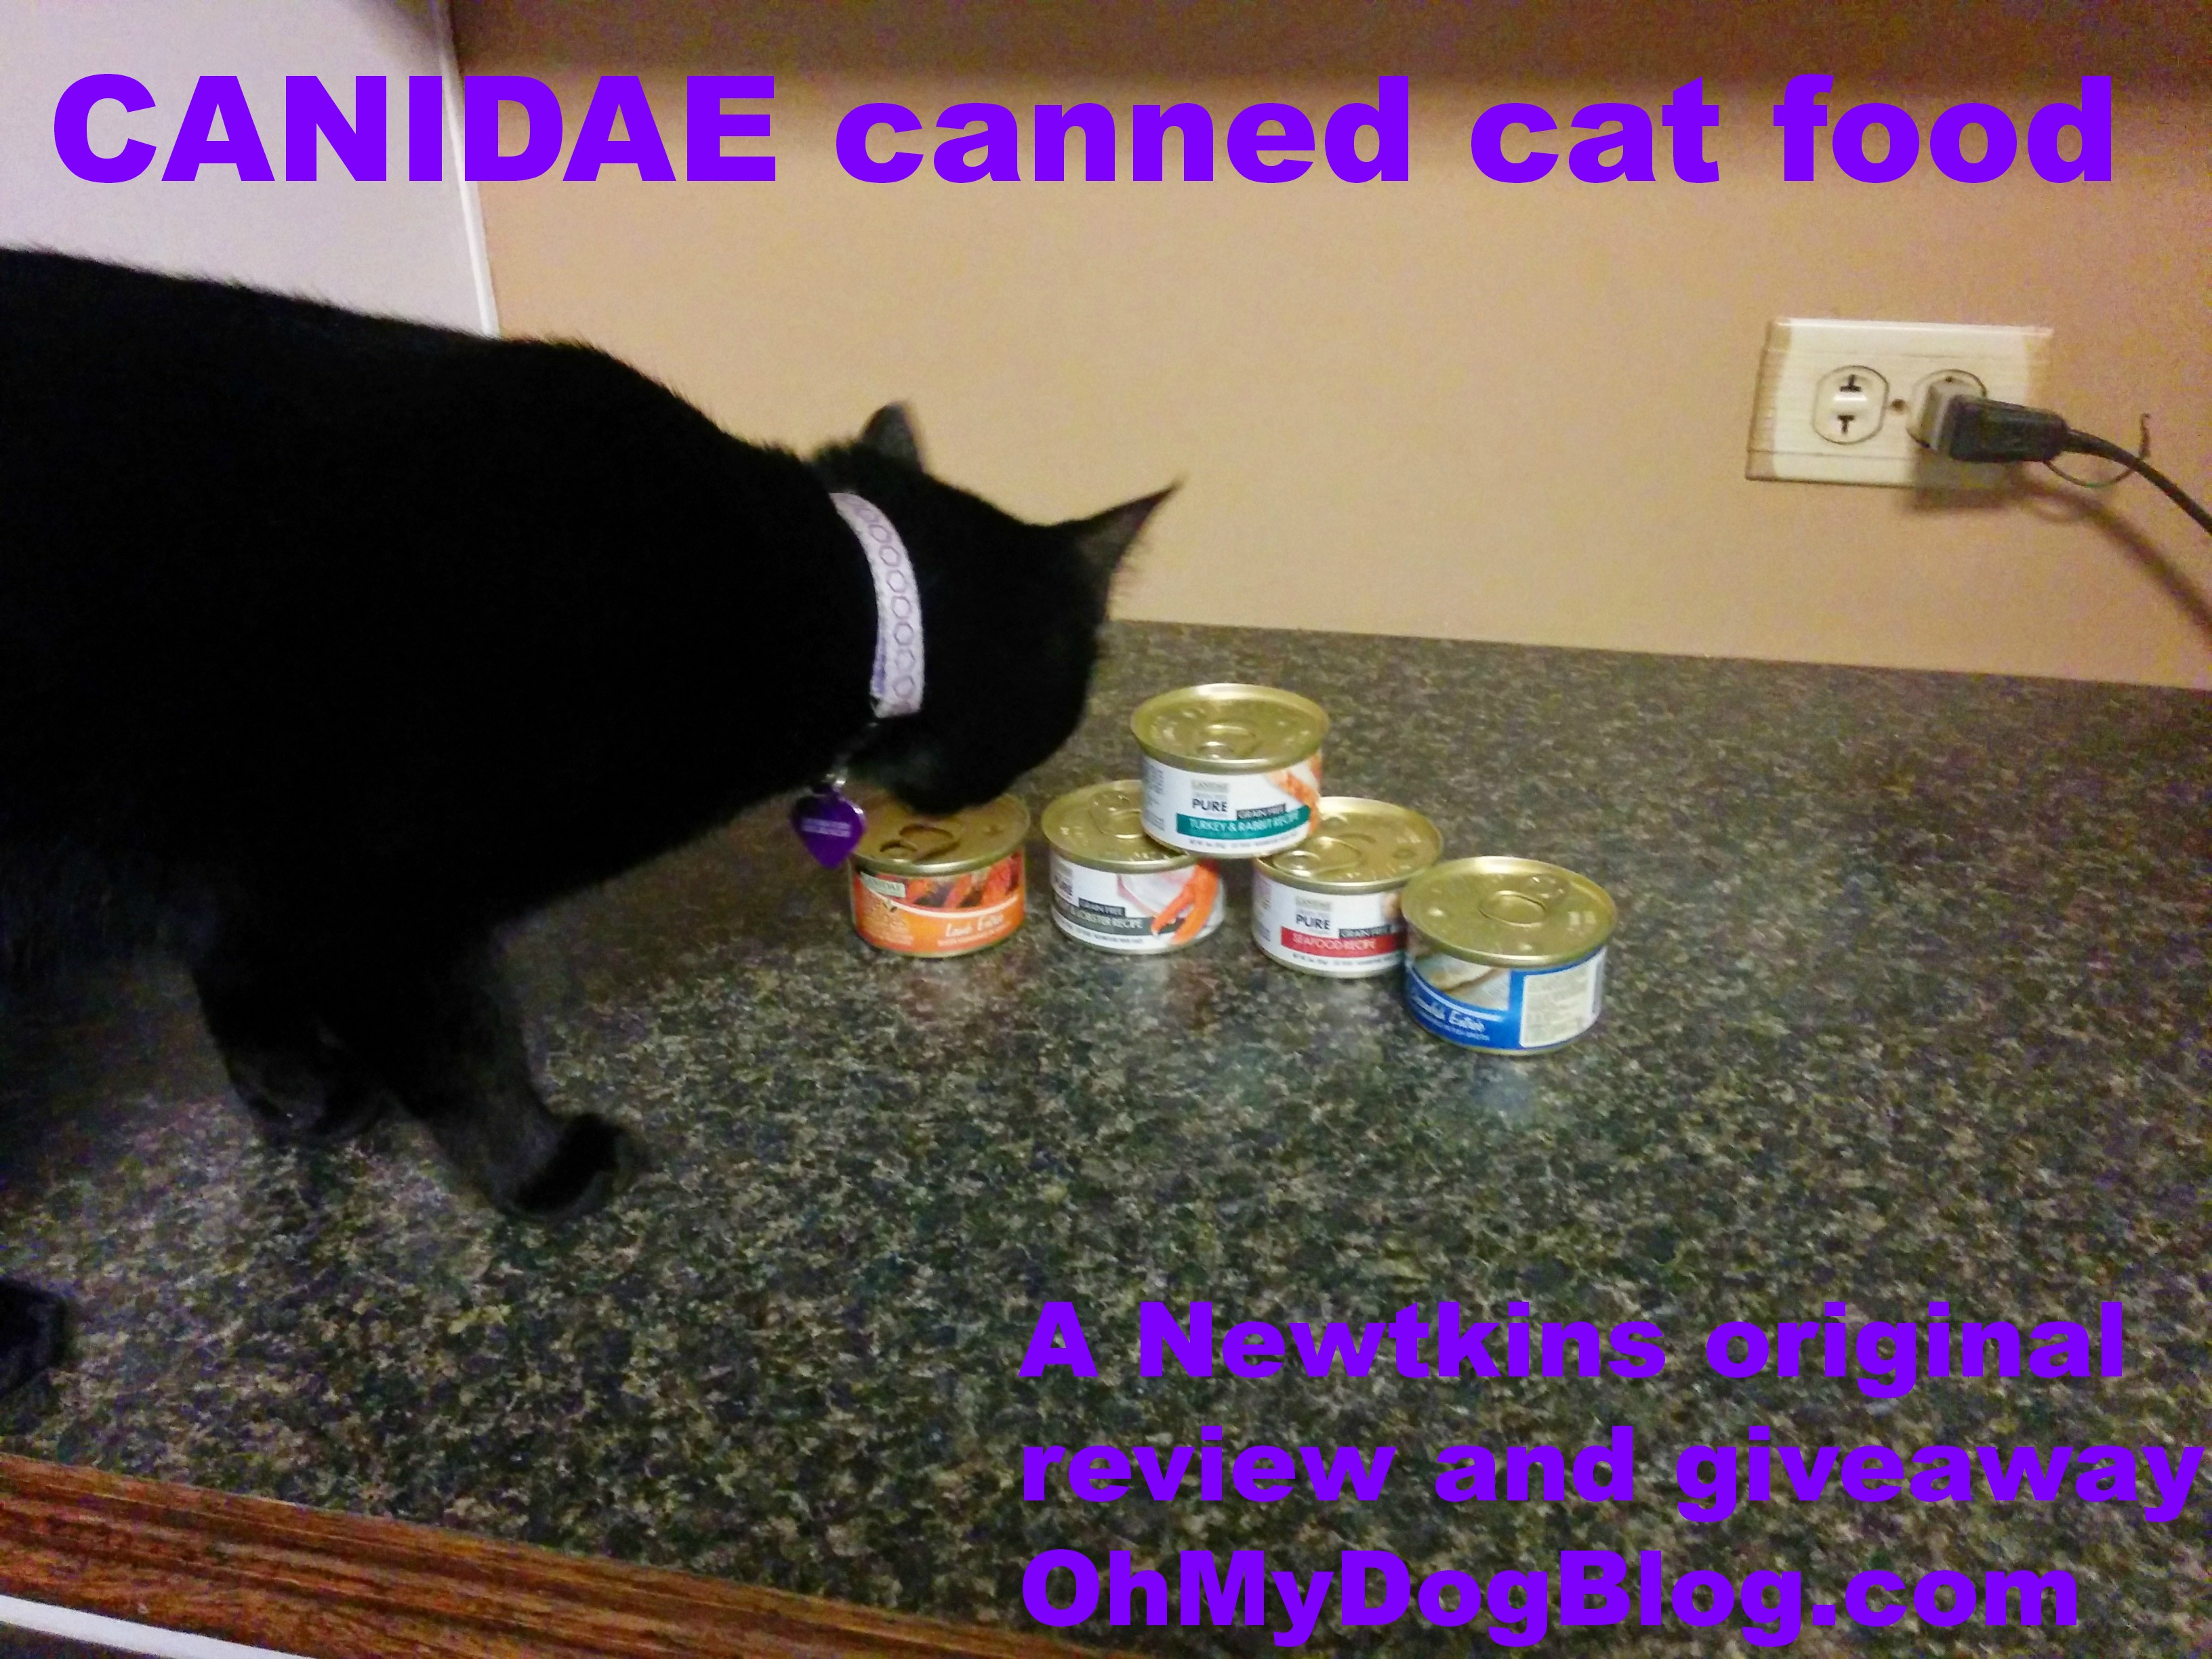 CANIDAE canned cat food review and giveaway